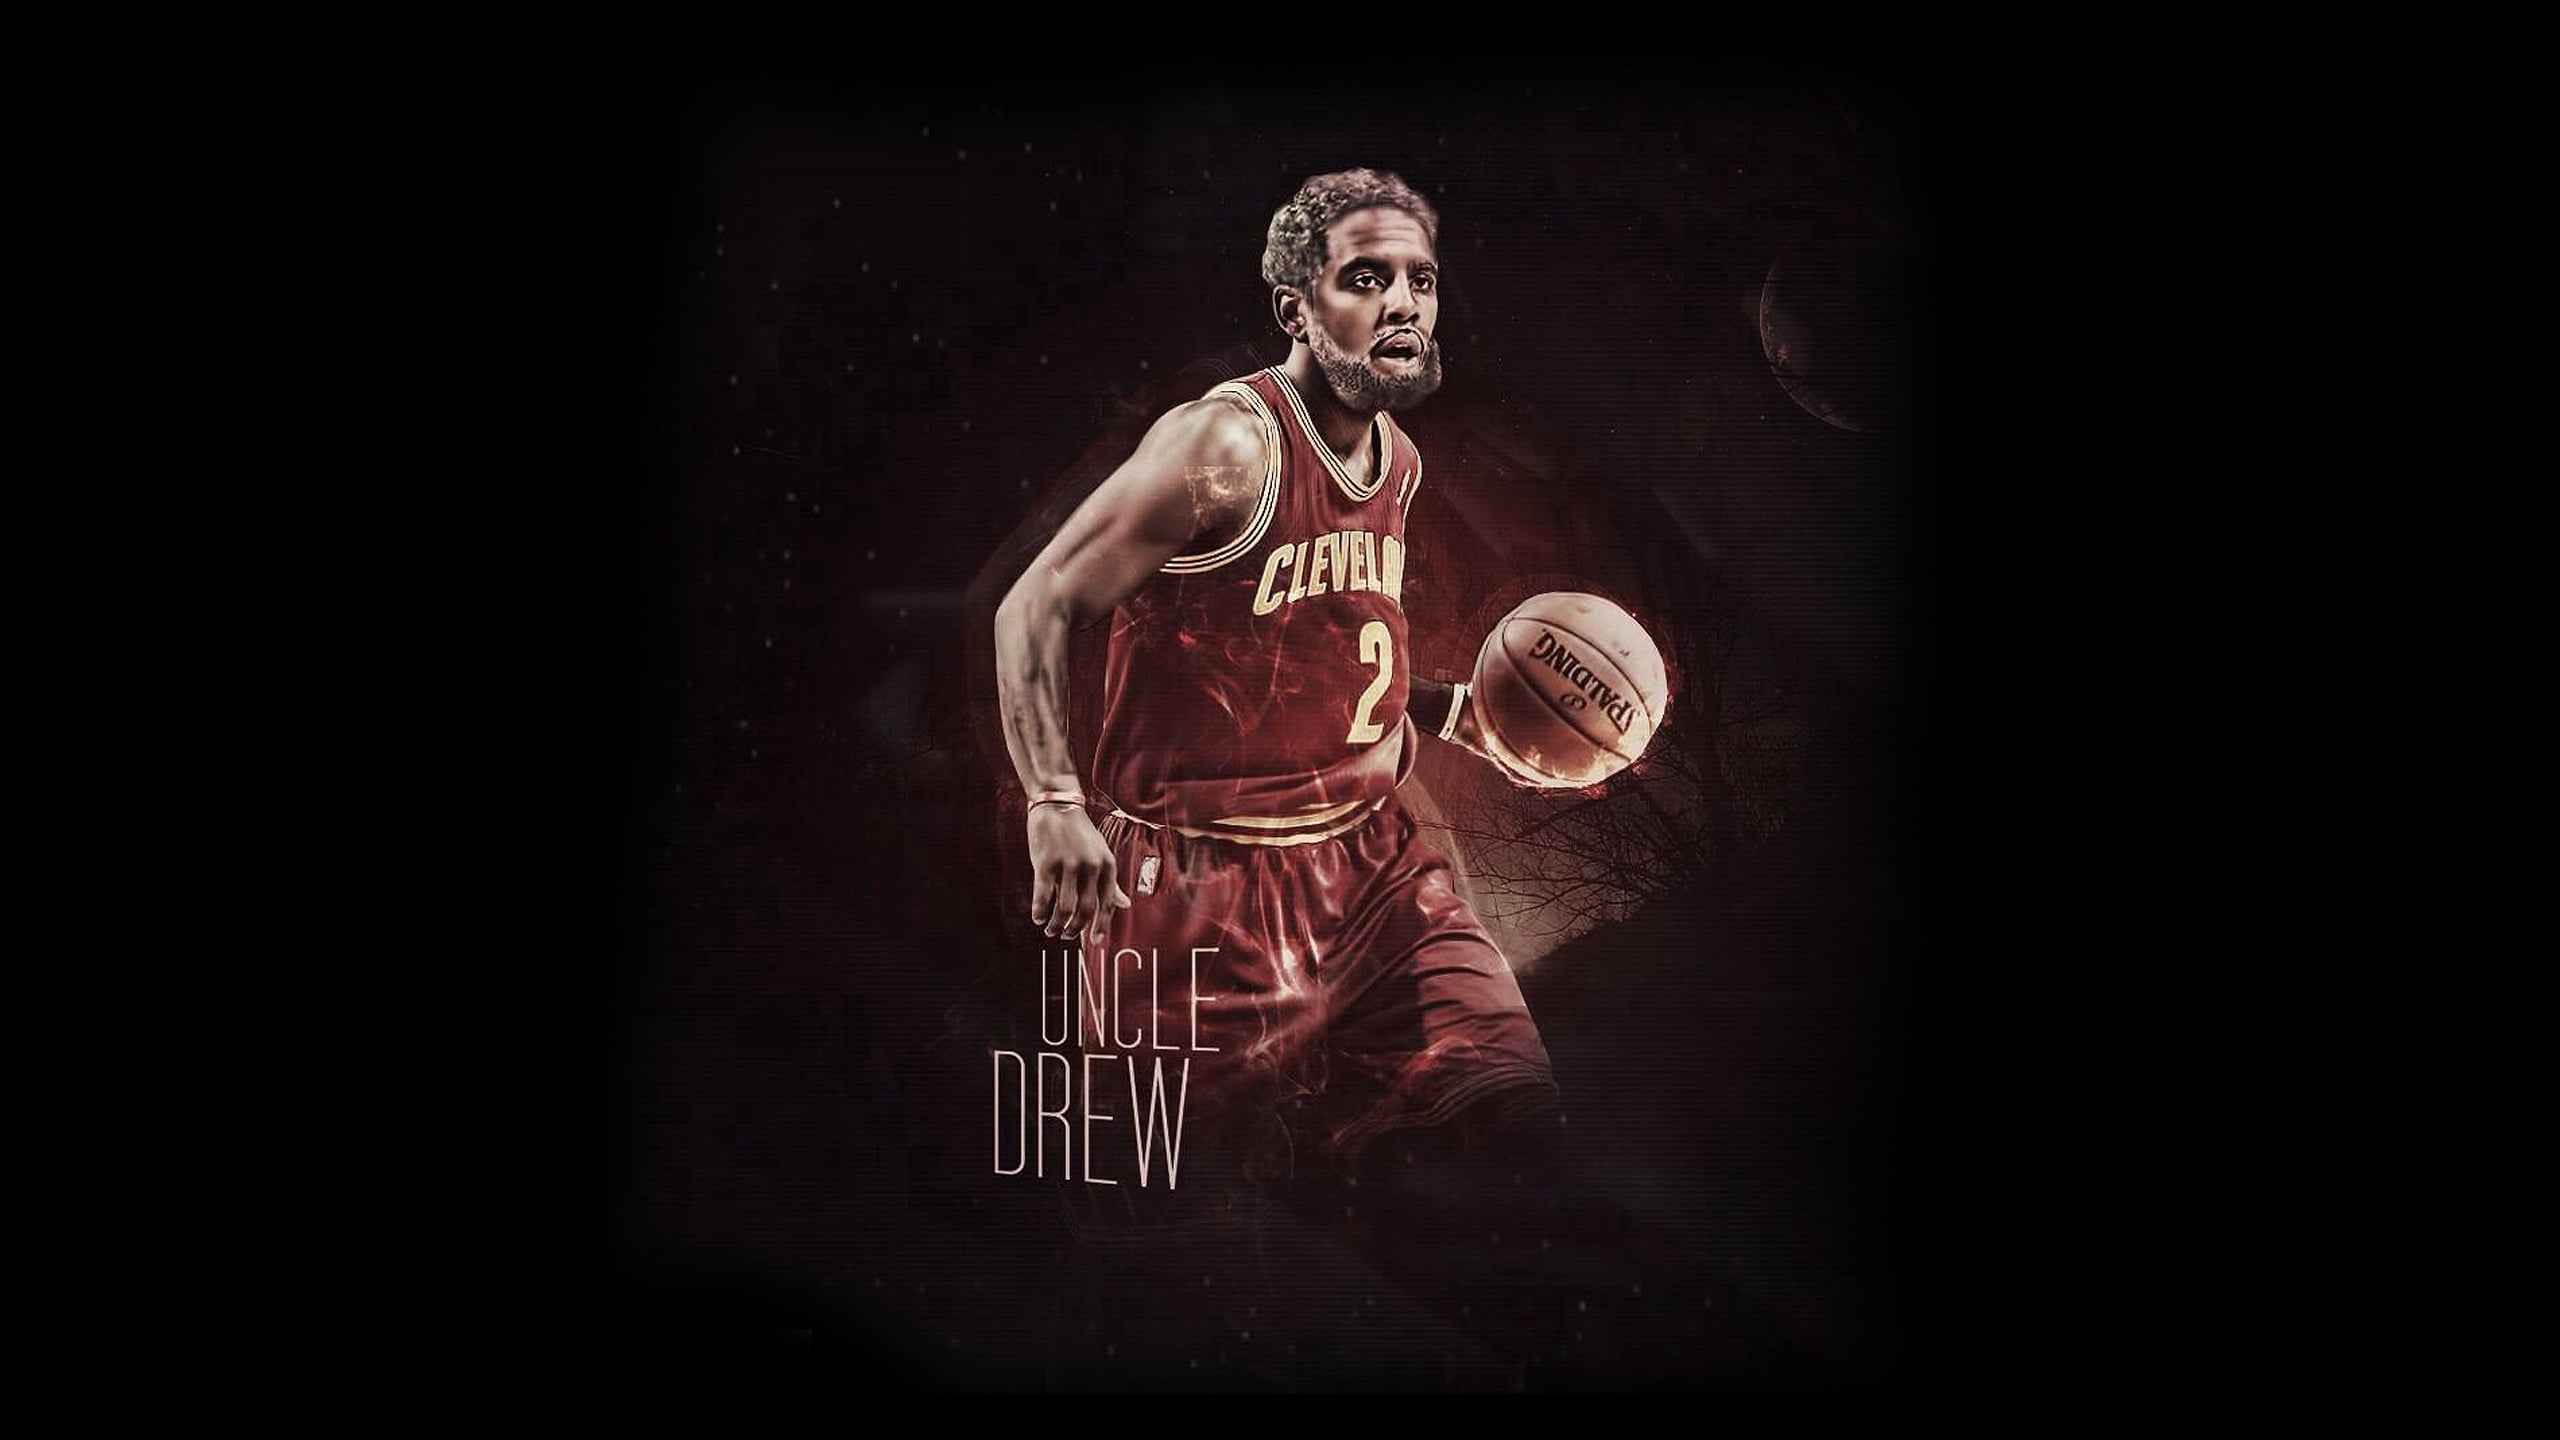 Hd wallpaper kyrie irving - Uncle Drew